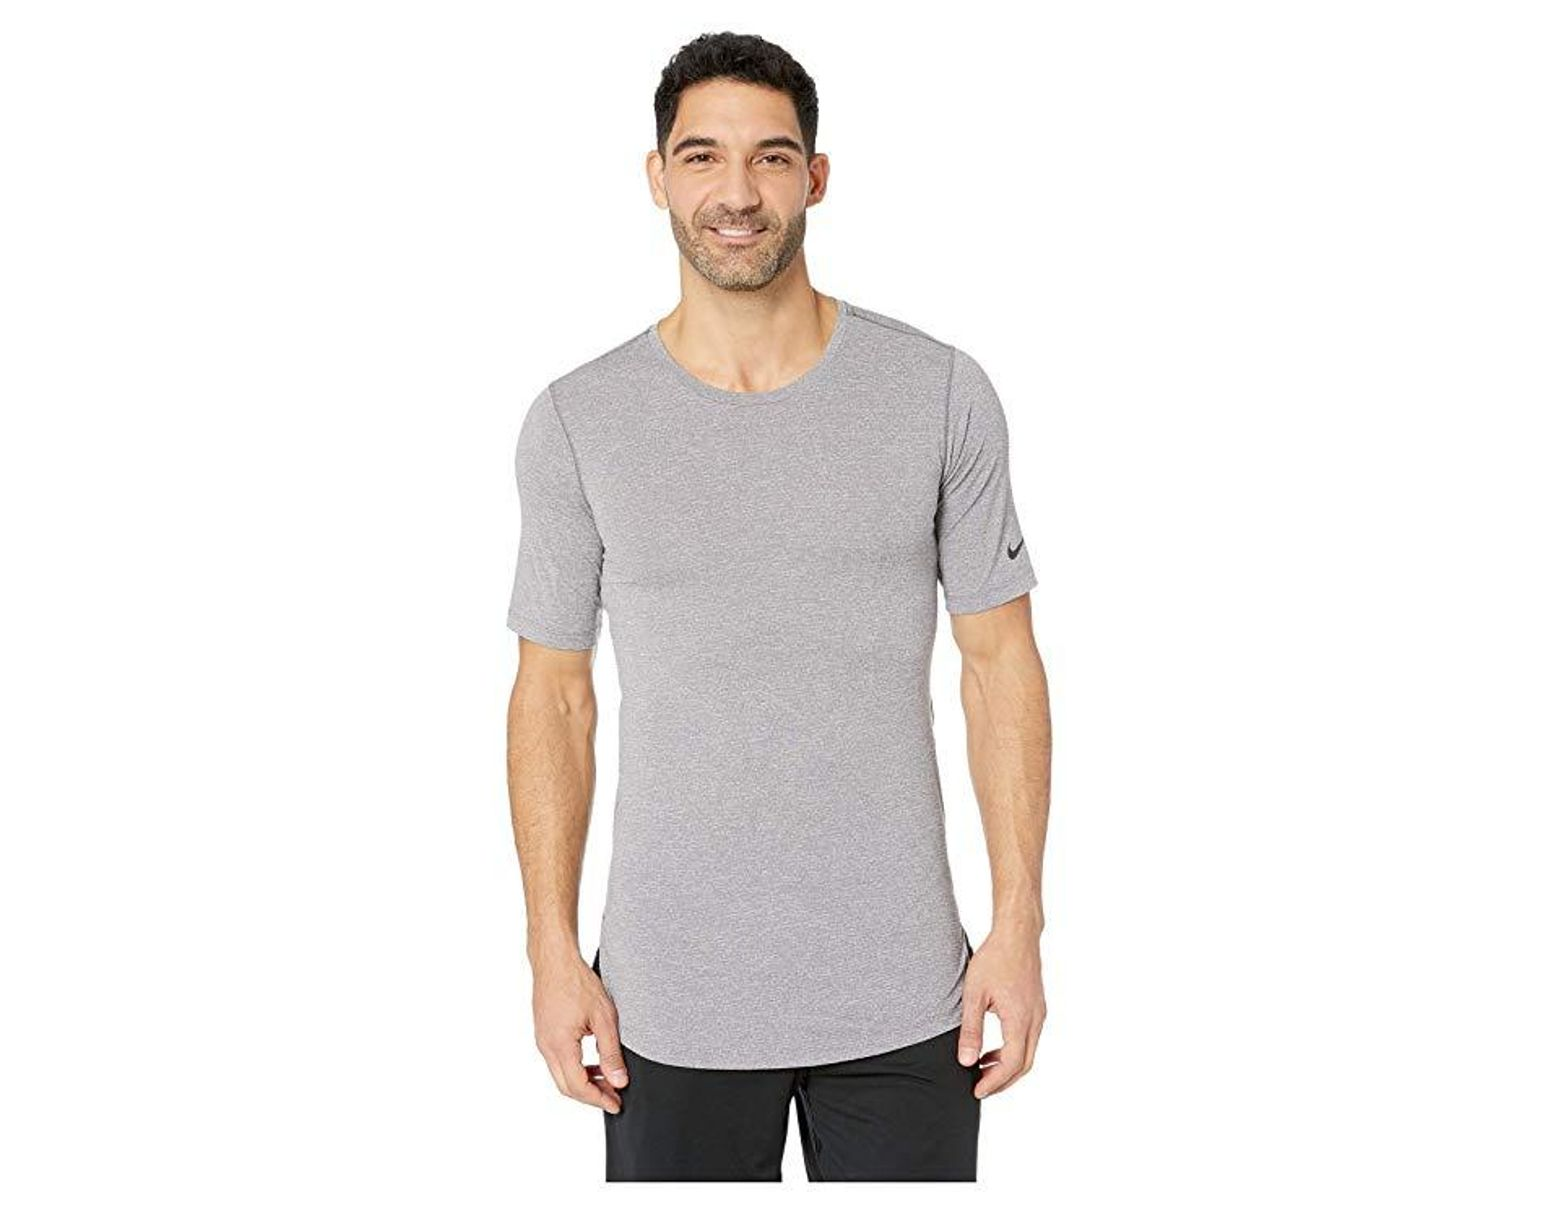 4009c018 Nike Top Short Sleeve Fitted Utility (gunsmoke/atmosphere Grey/black)  Clothing in Gray for Men - Save 27% - Lyst